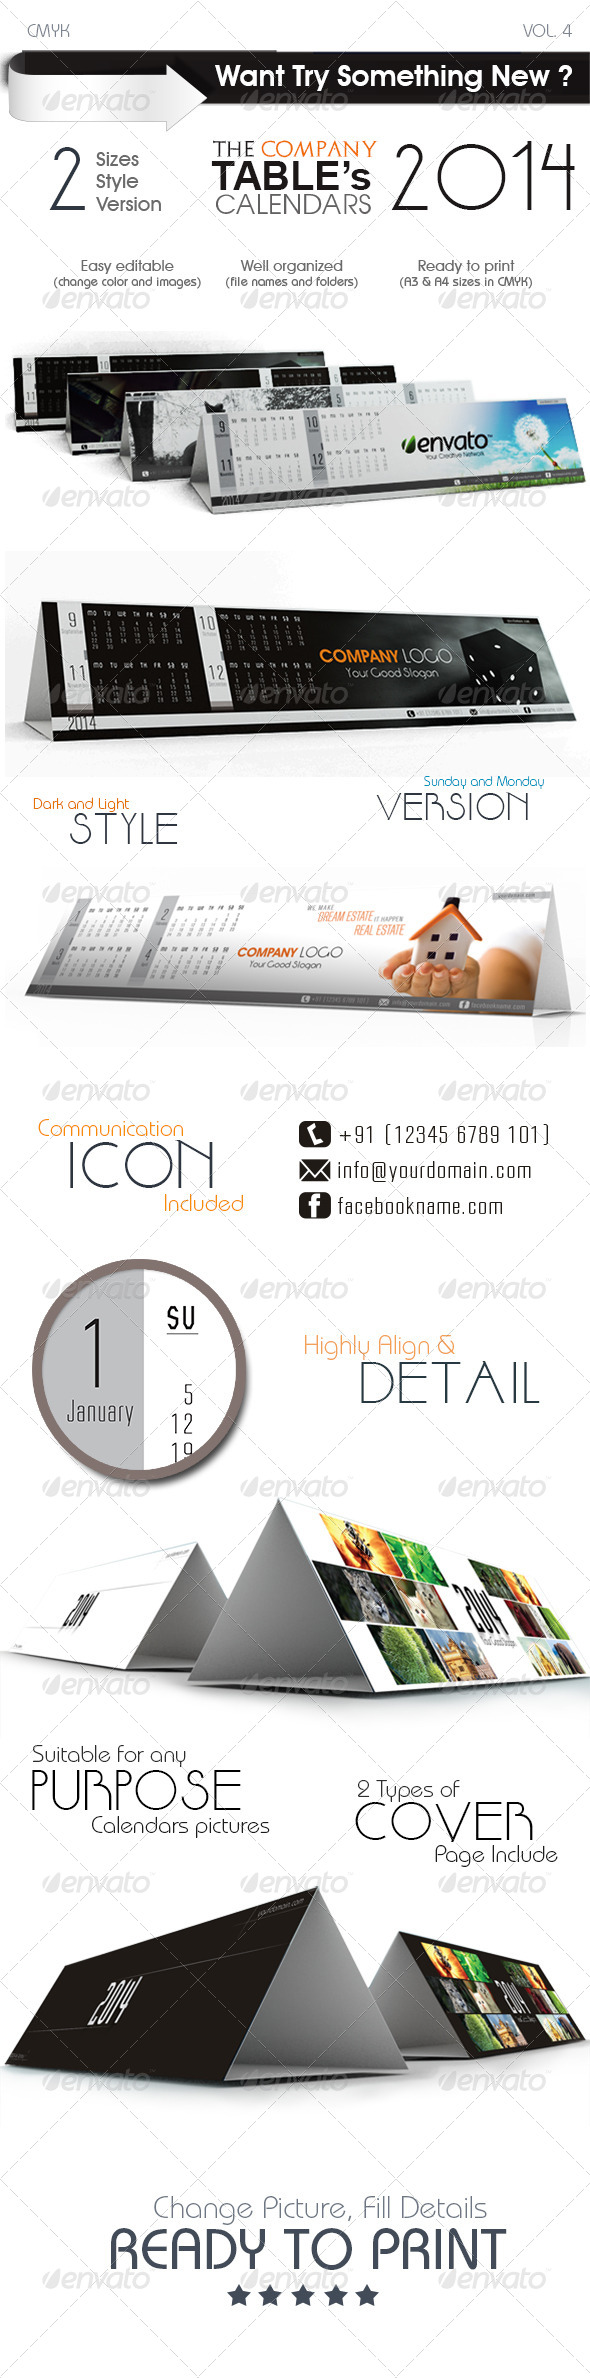 GraphicRiver The Company Table Calendars 6440566